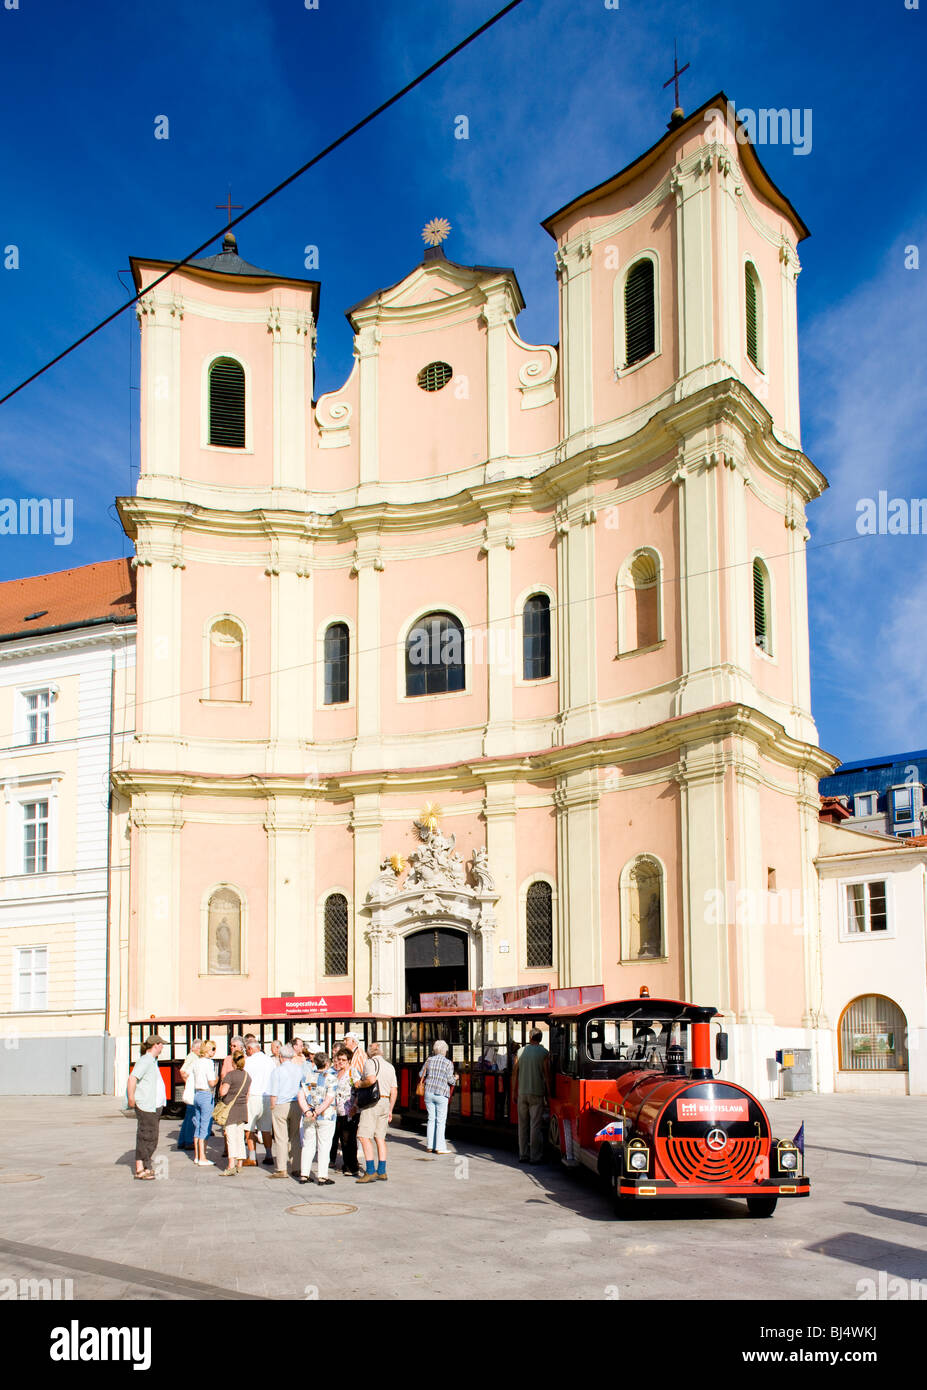 tourist train in front of Trinity Church, Bratislava, Slovakia - Stock Image